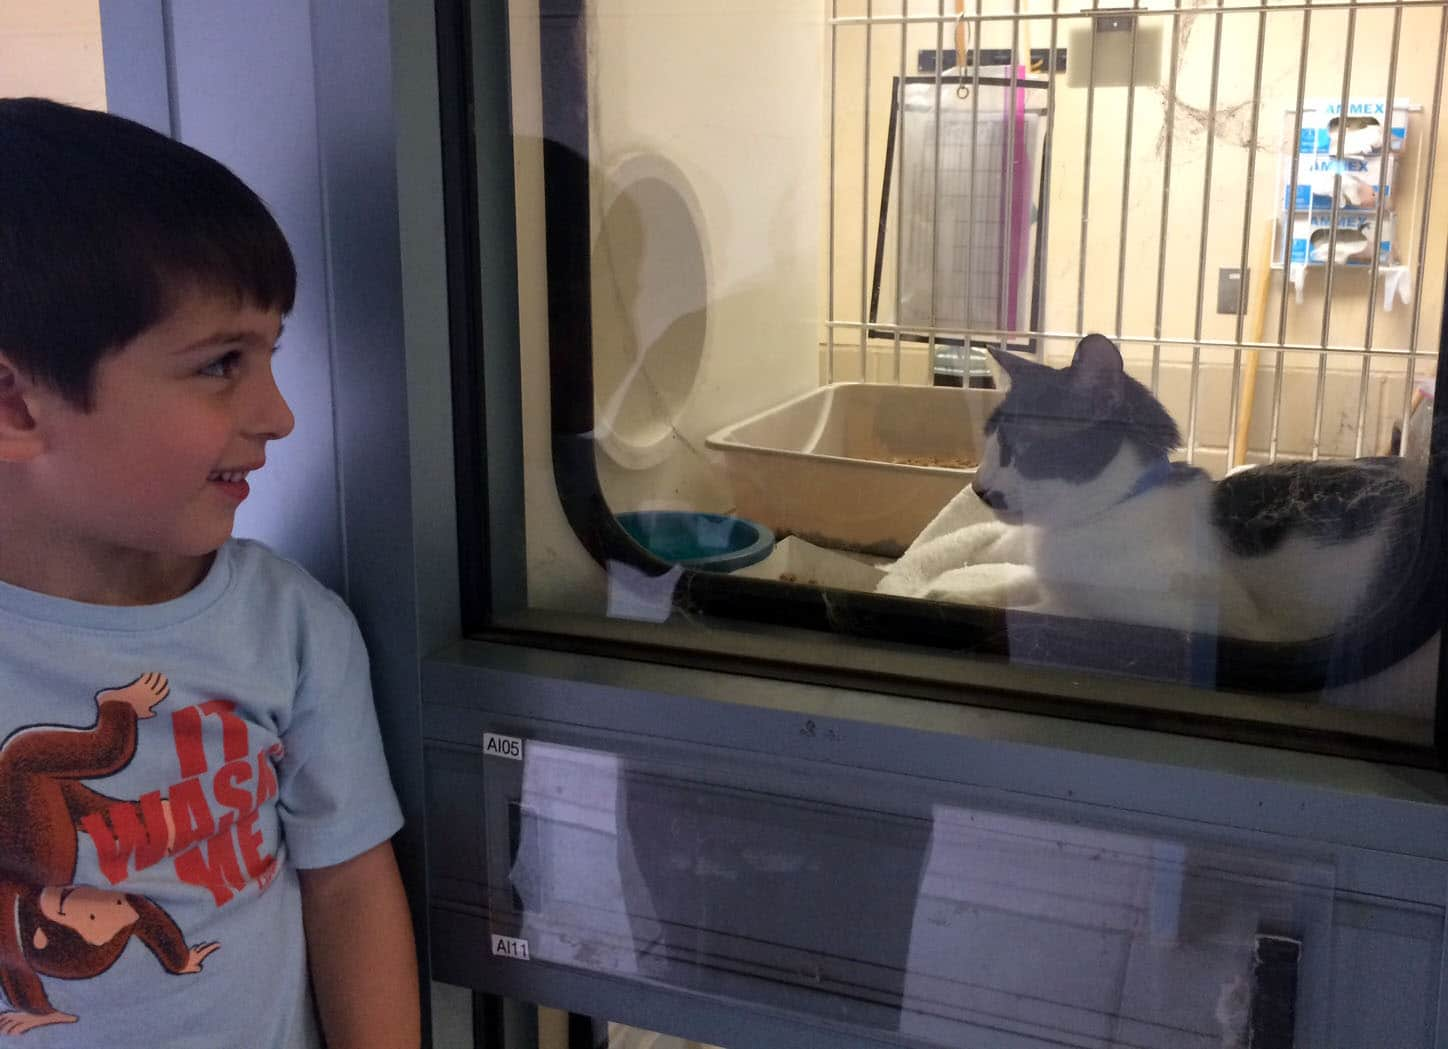 A boy looking at the cat in the Animals Care center